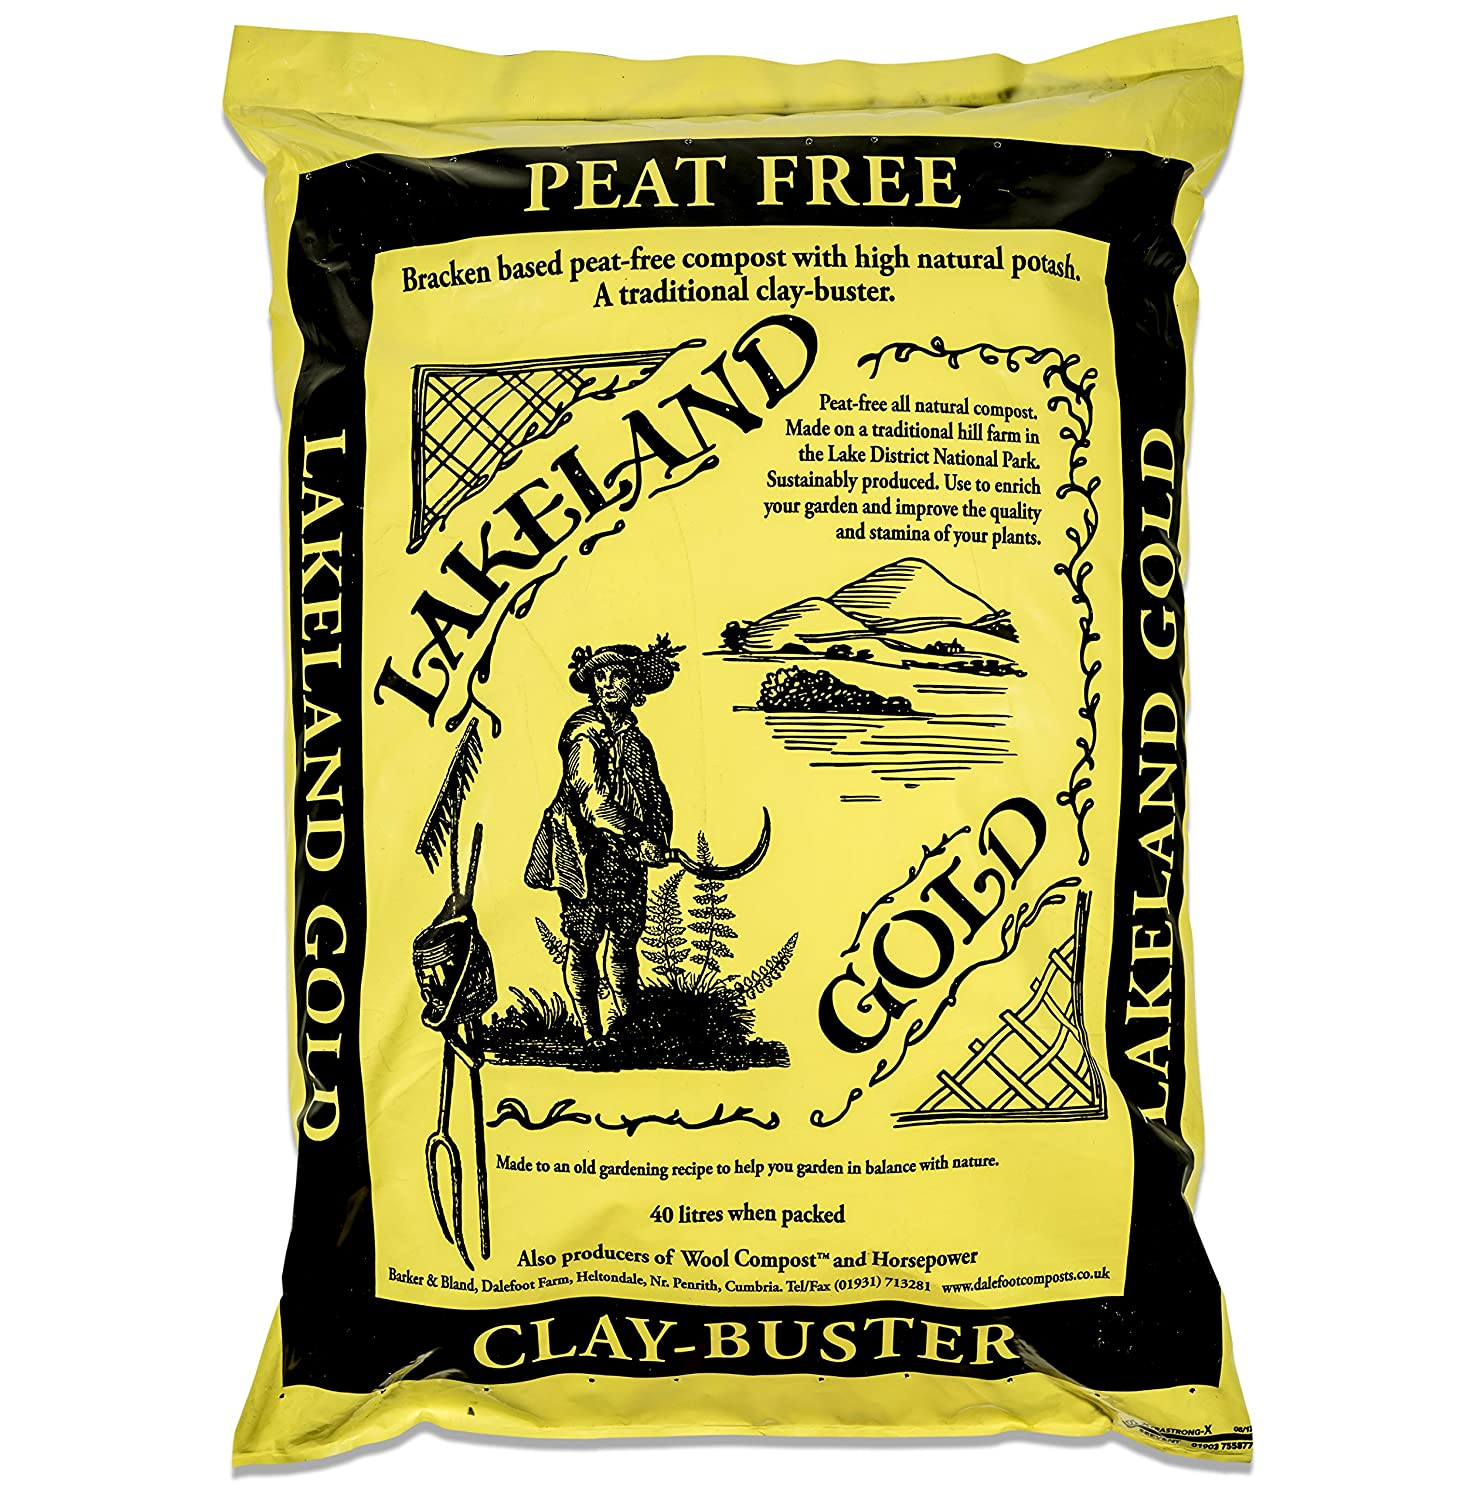 2 x Bags of Lakeland Gold peat-Free Compost: 40 litres Dalefoot